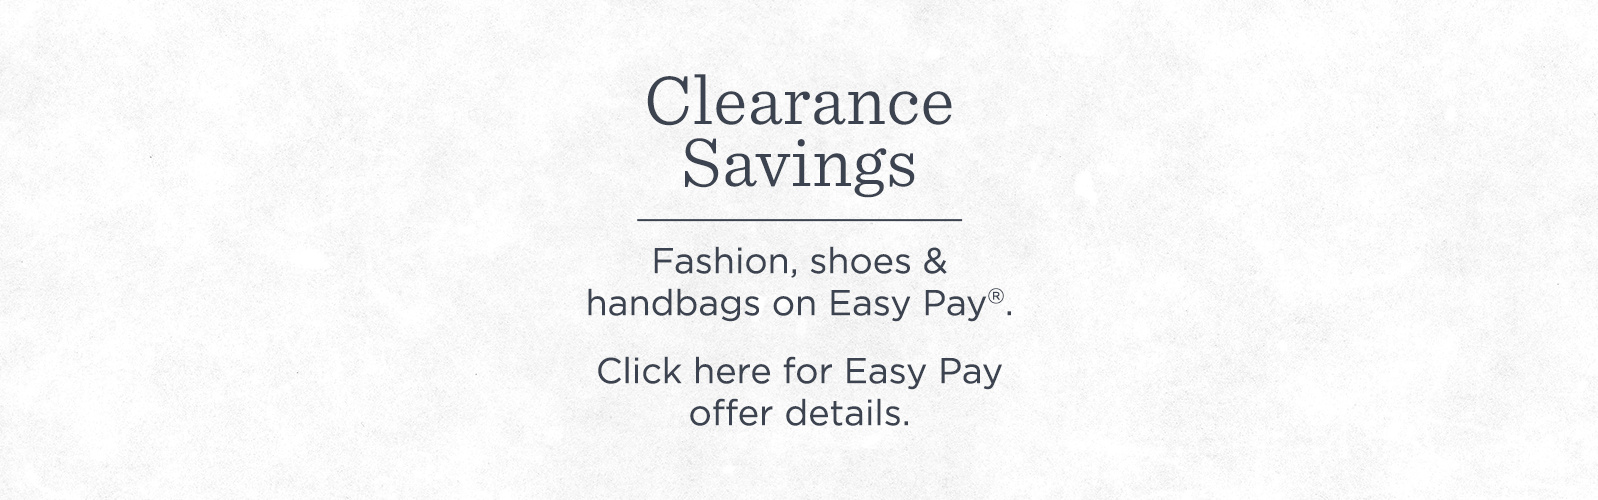 Clearance Savings. Fashion, shoes & handbags on Easy Pay®.  Click here for Easy Pay offer details.